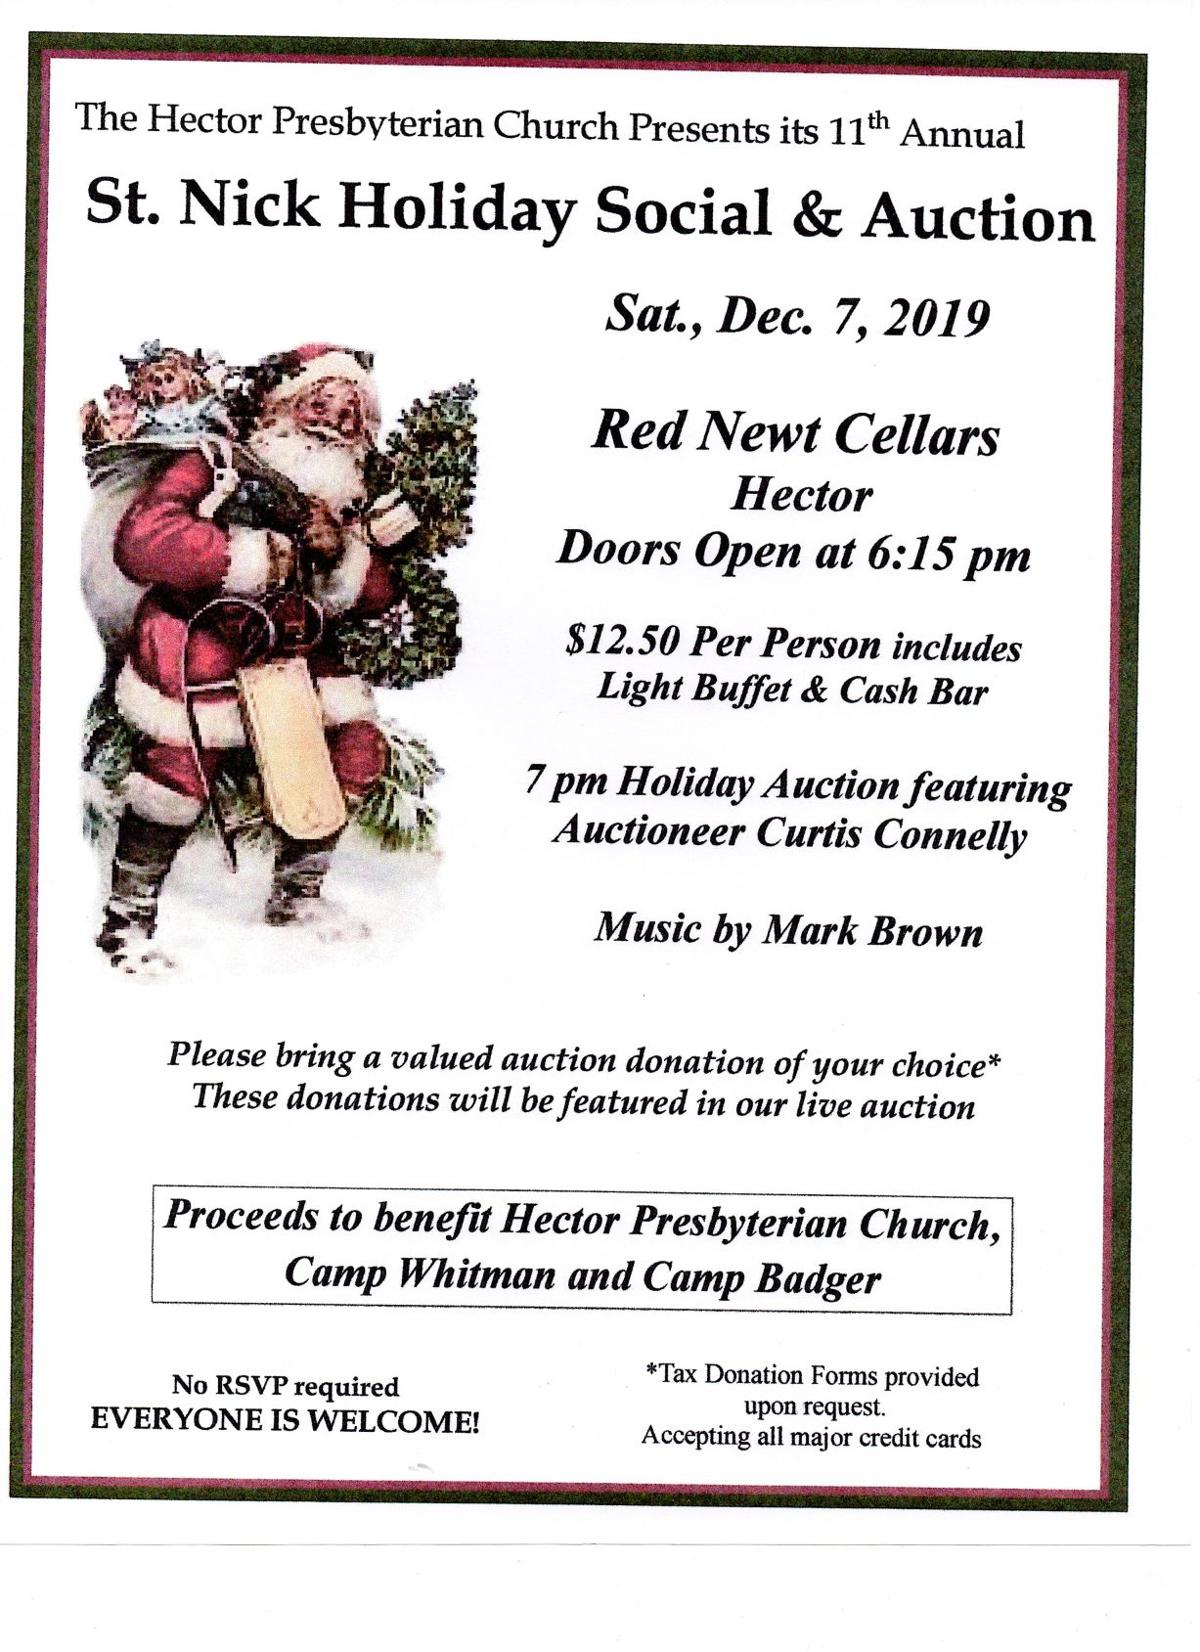 St. NIck's Holiday Social and Auction